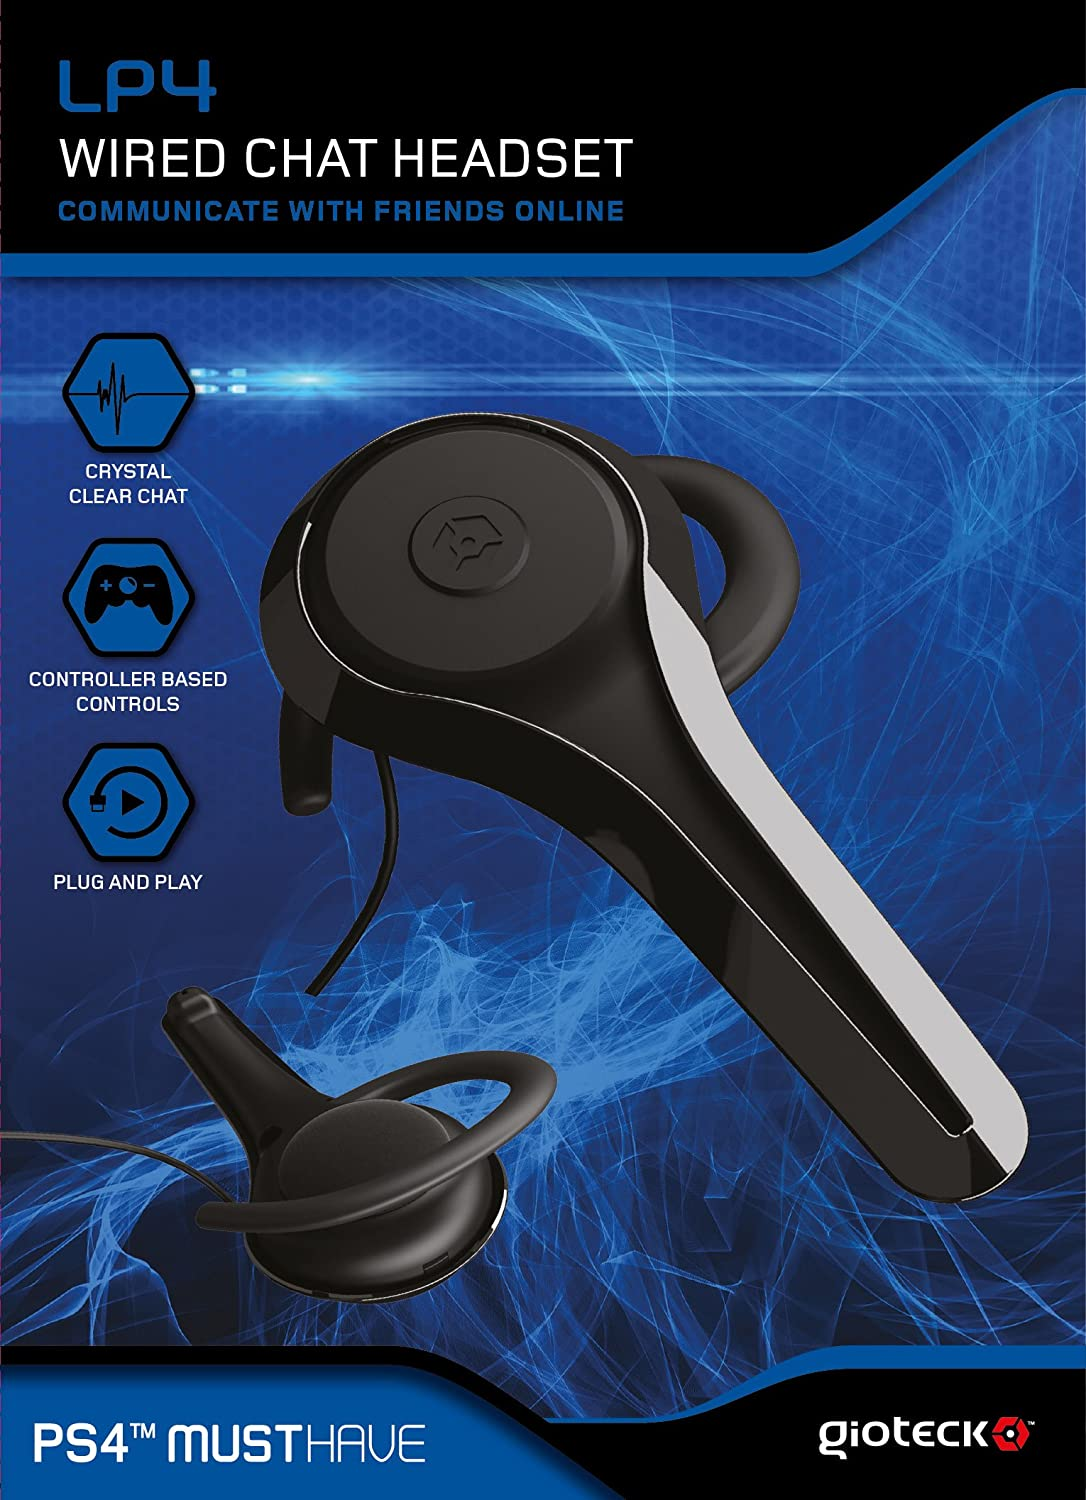 GIOTECK LPC WIRED Chat Headset PS4 Xbox